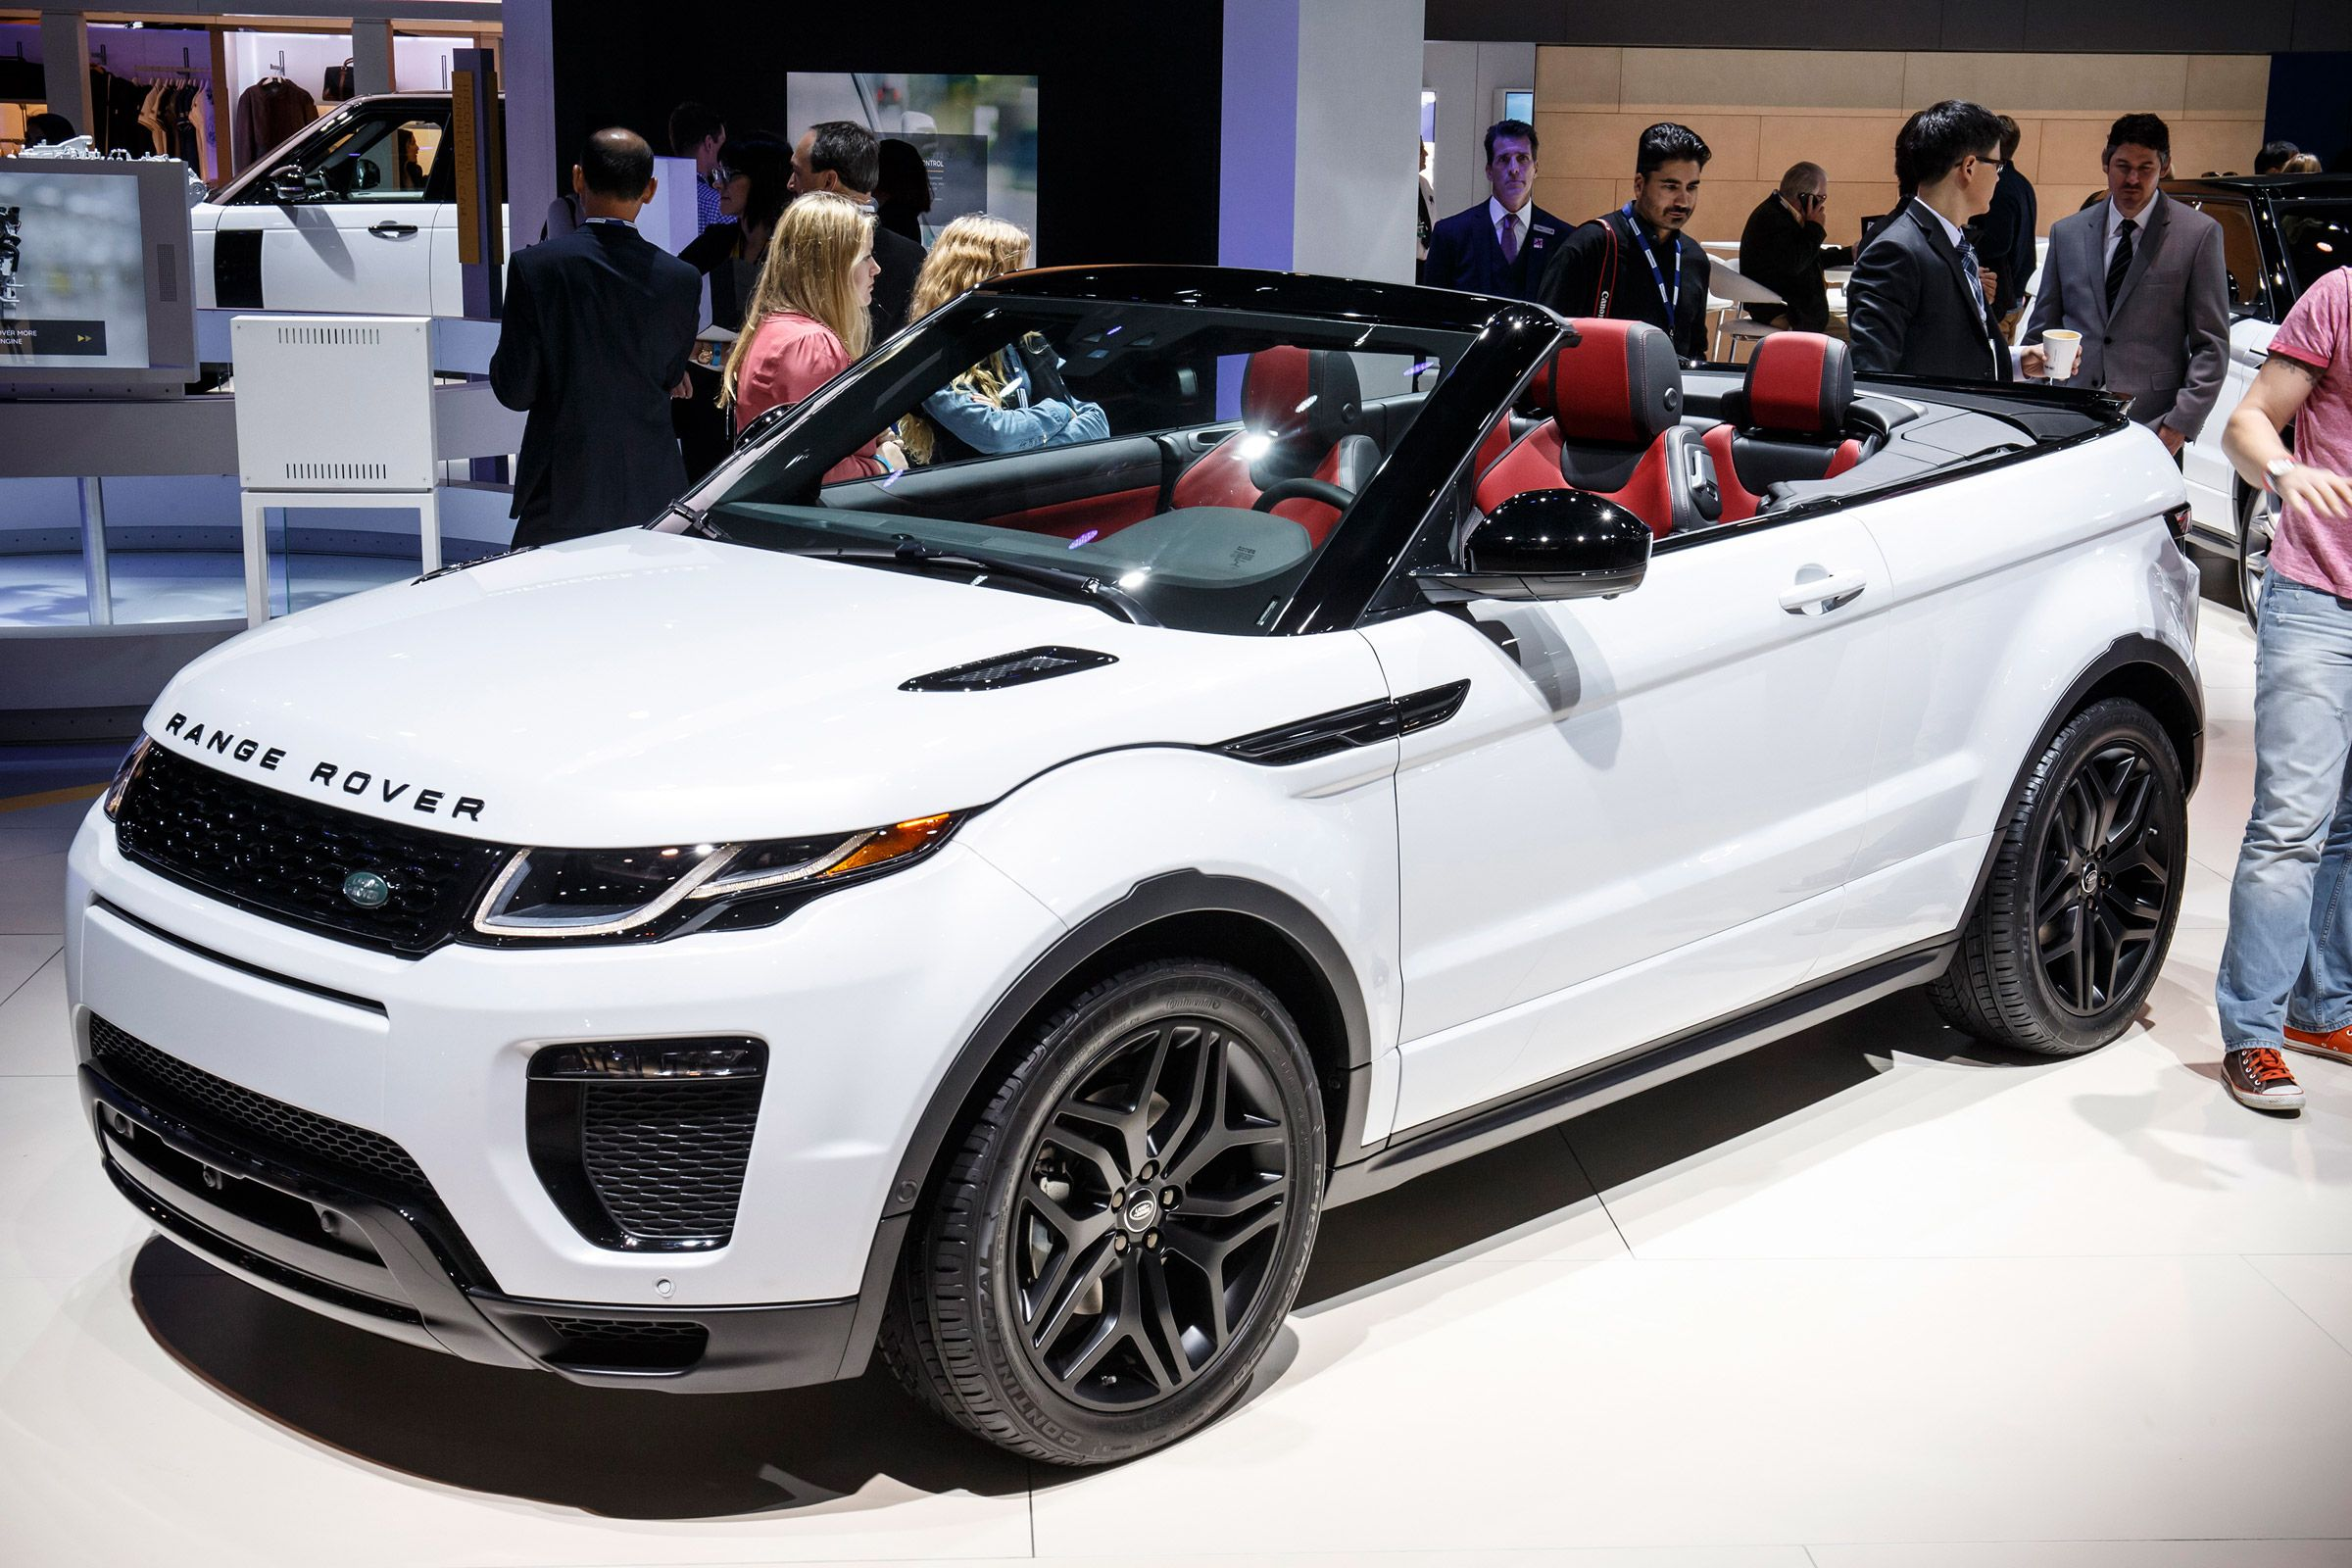 land rover has built the world s first luxury suv convertible the range rover evoque. Black Bedroom Furniture Sets. Home Design Ideas